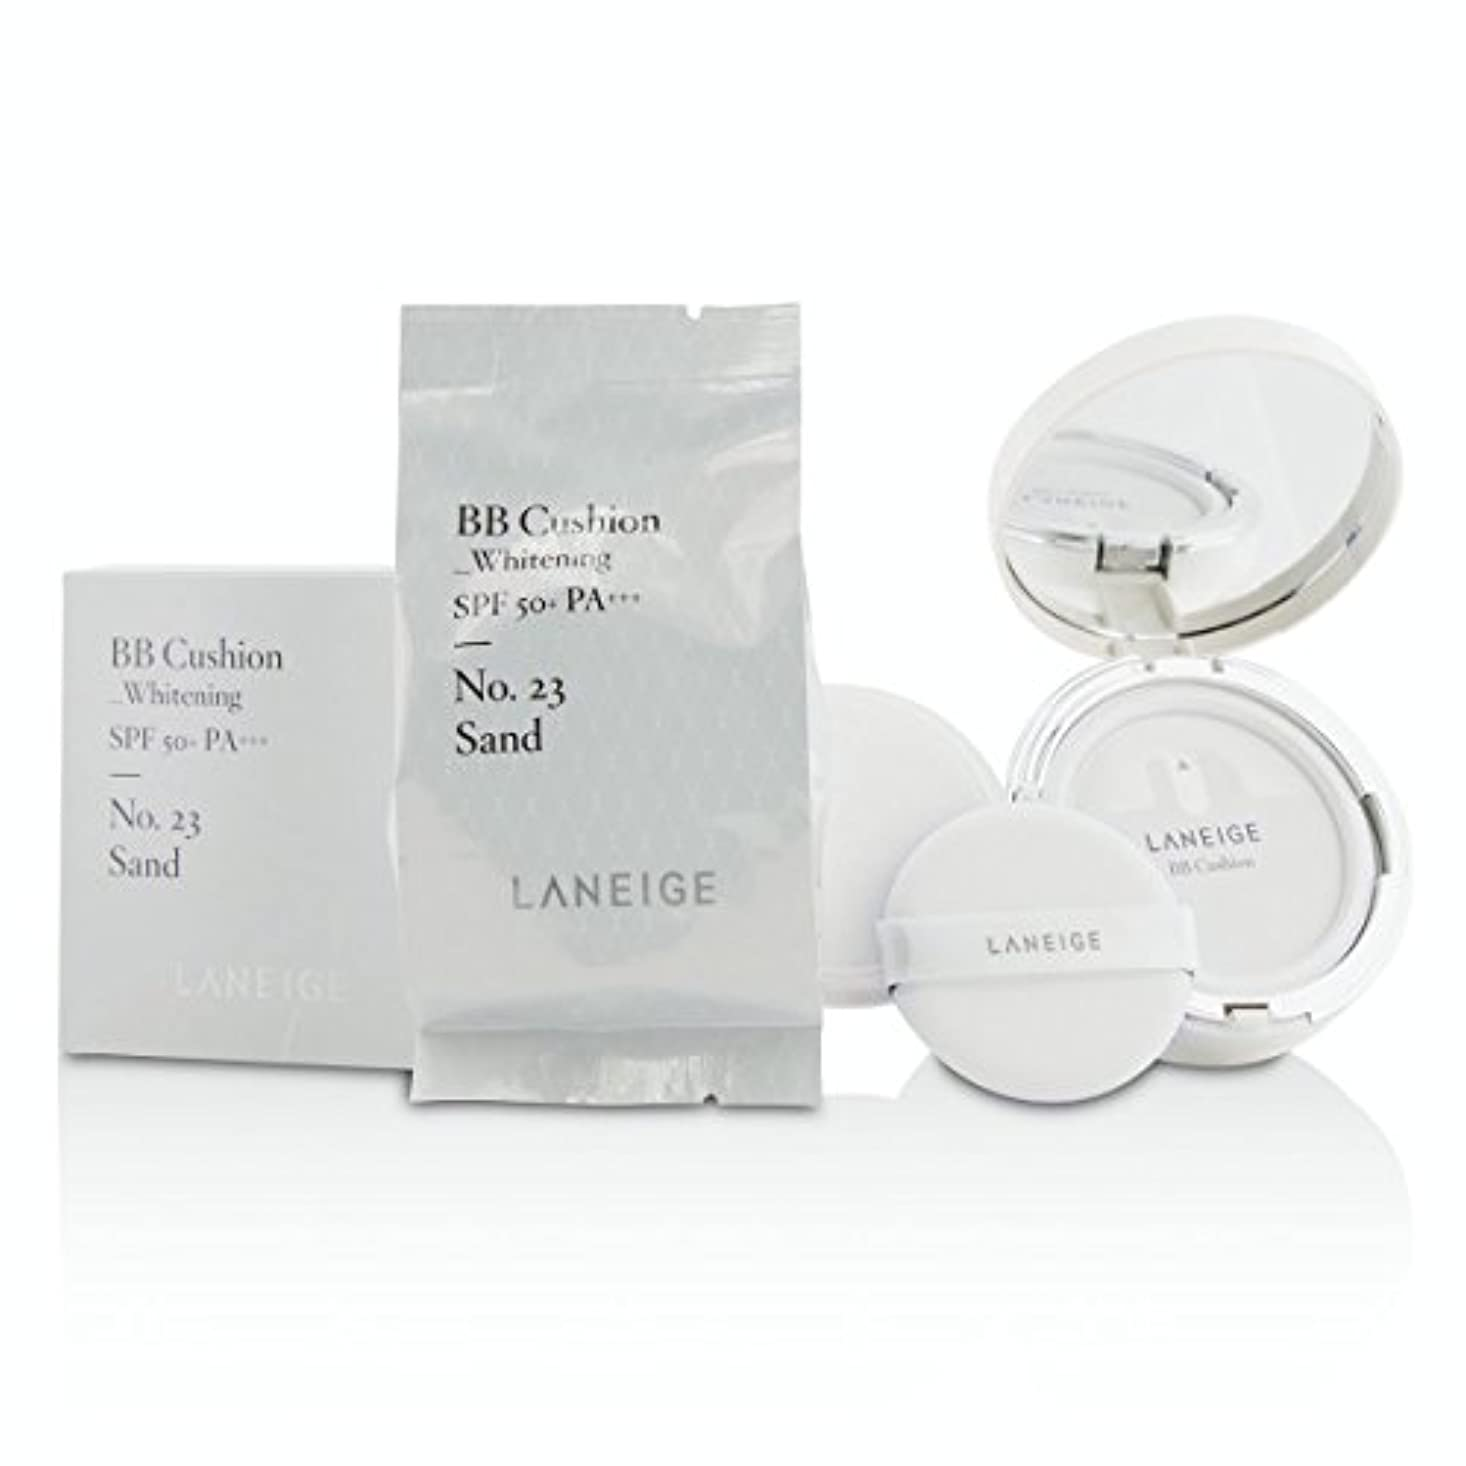 検索エンジン最適化滴下減衰[Laneige] BB Cushion Foundation (Whitening) SPF 50 With Extra Refill - # No. 23 Sand 2x15g/0.5oz